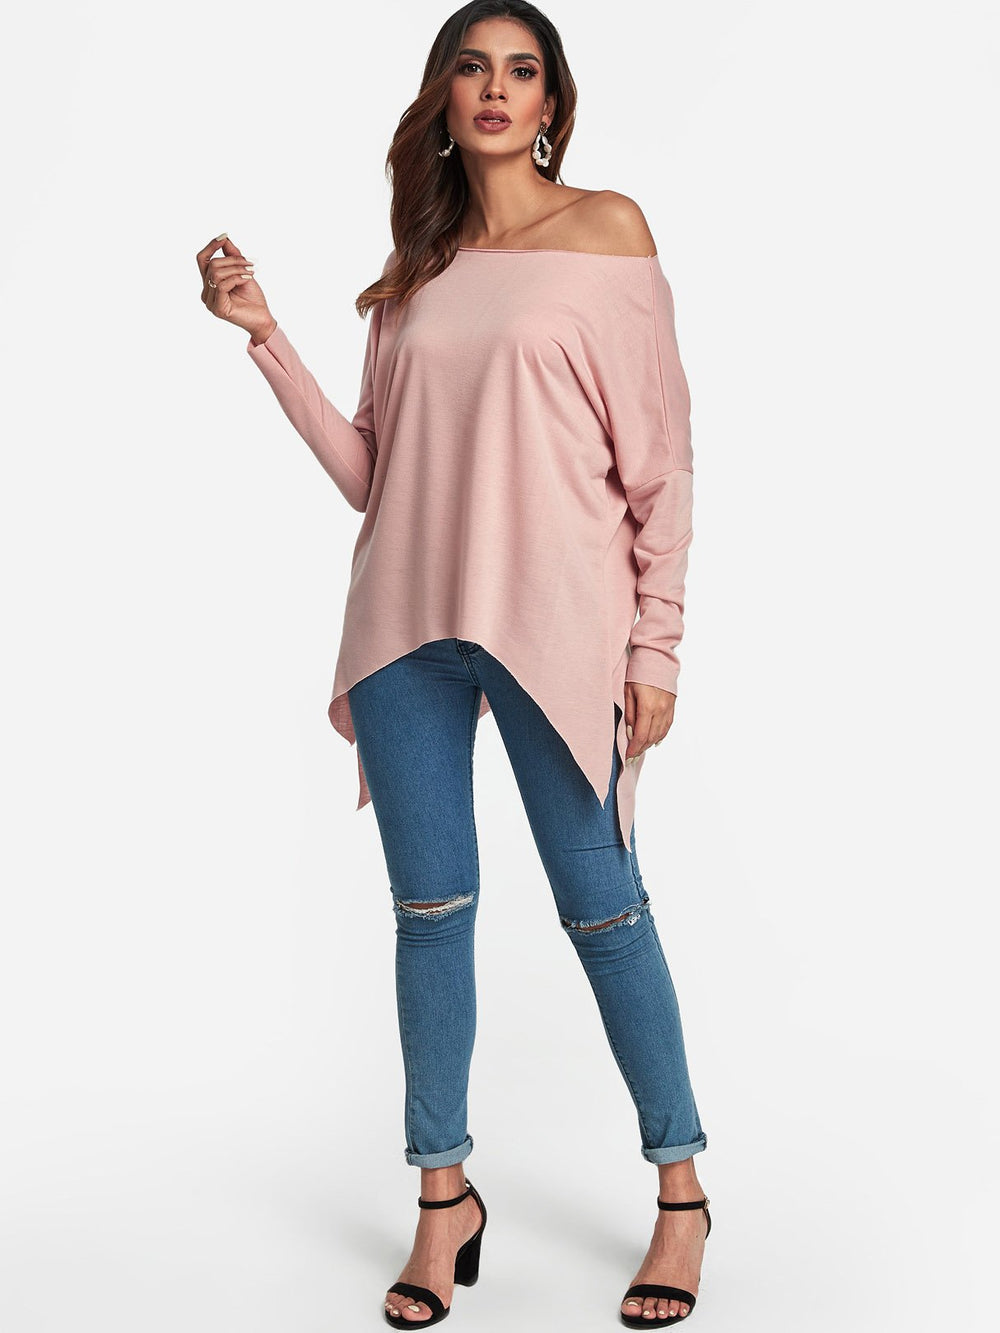 Cheap Fashion Tops For Women